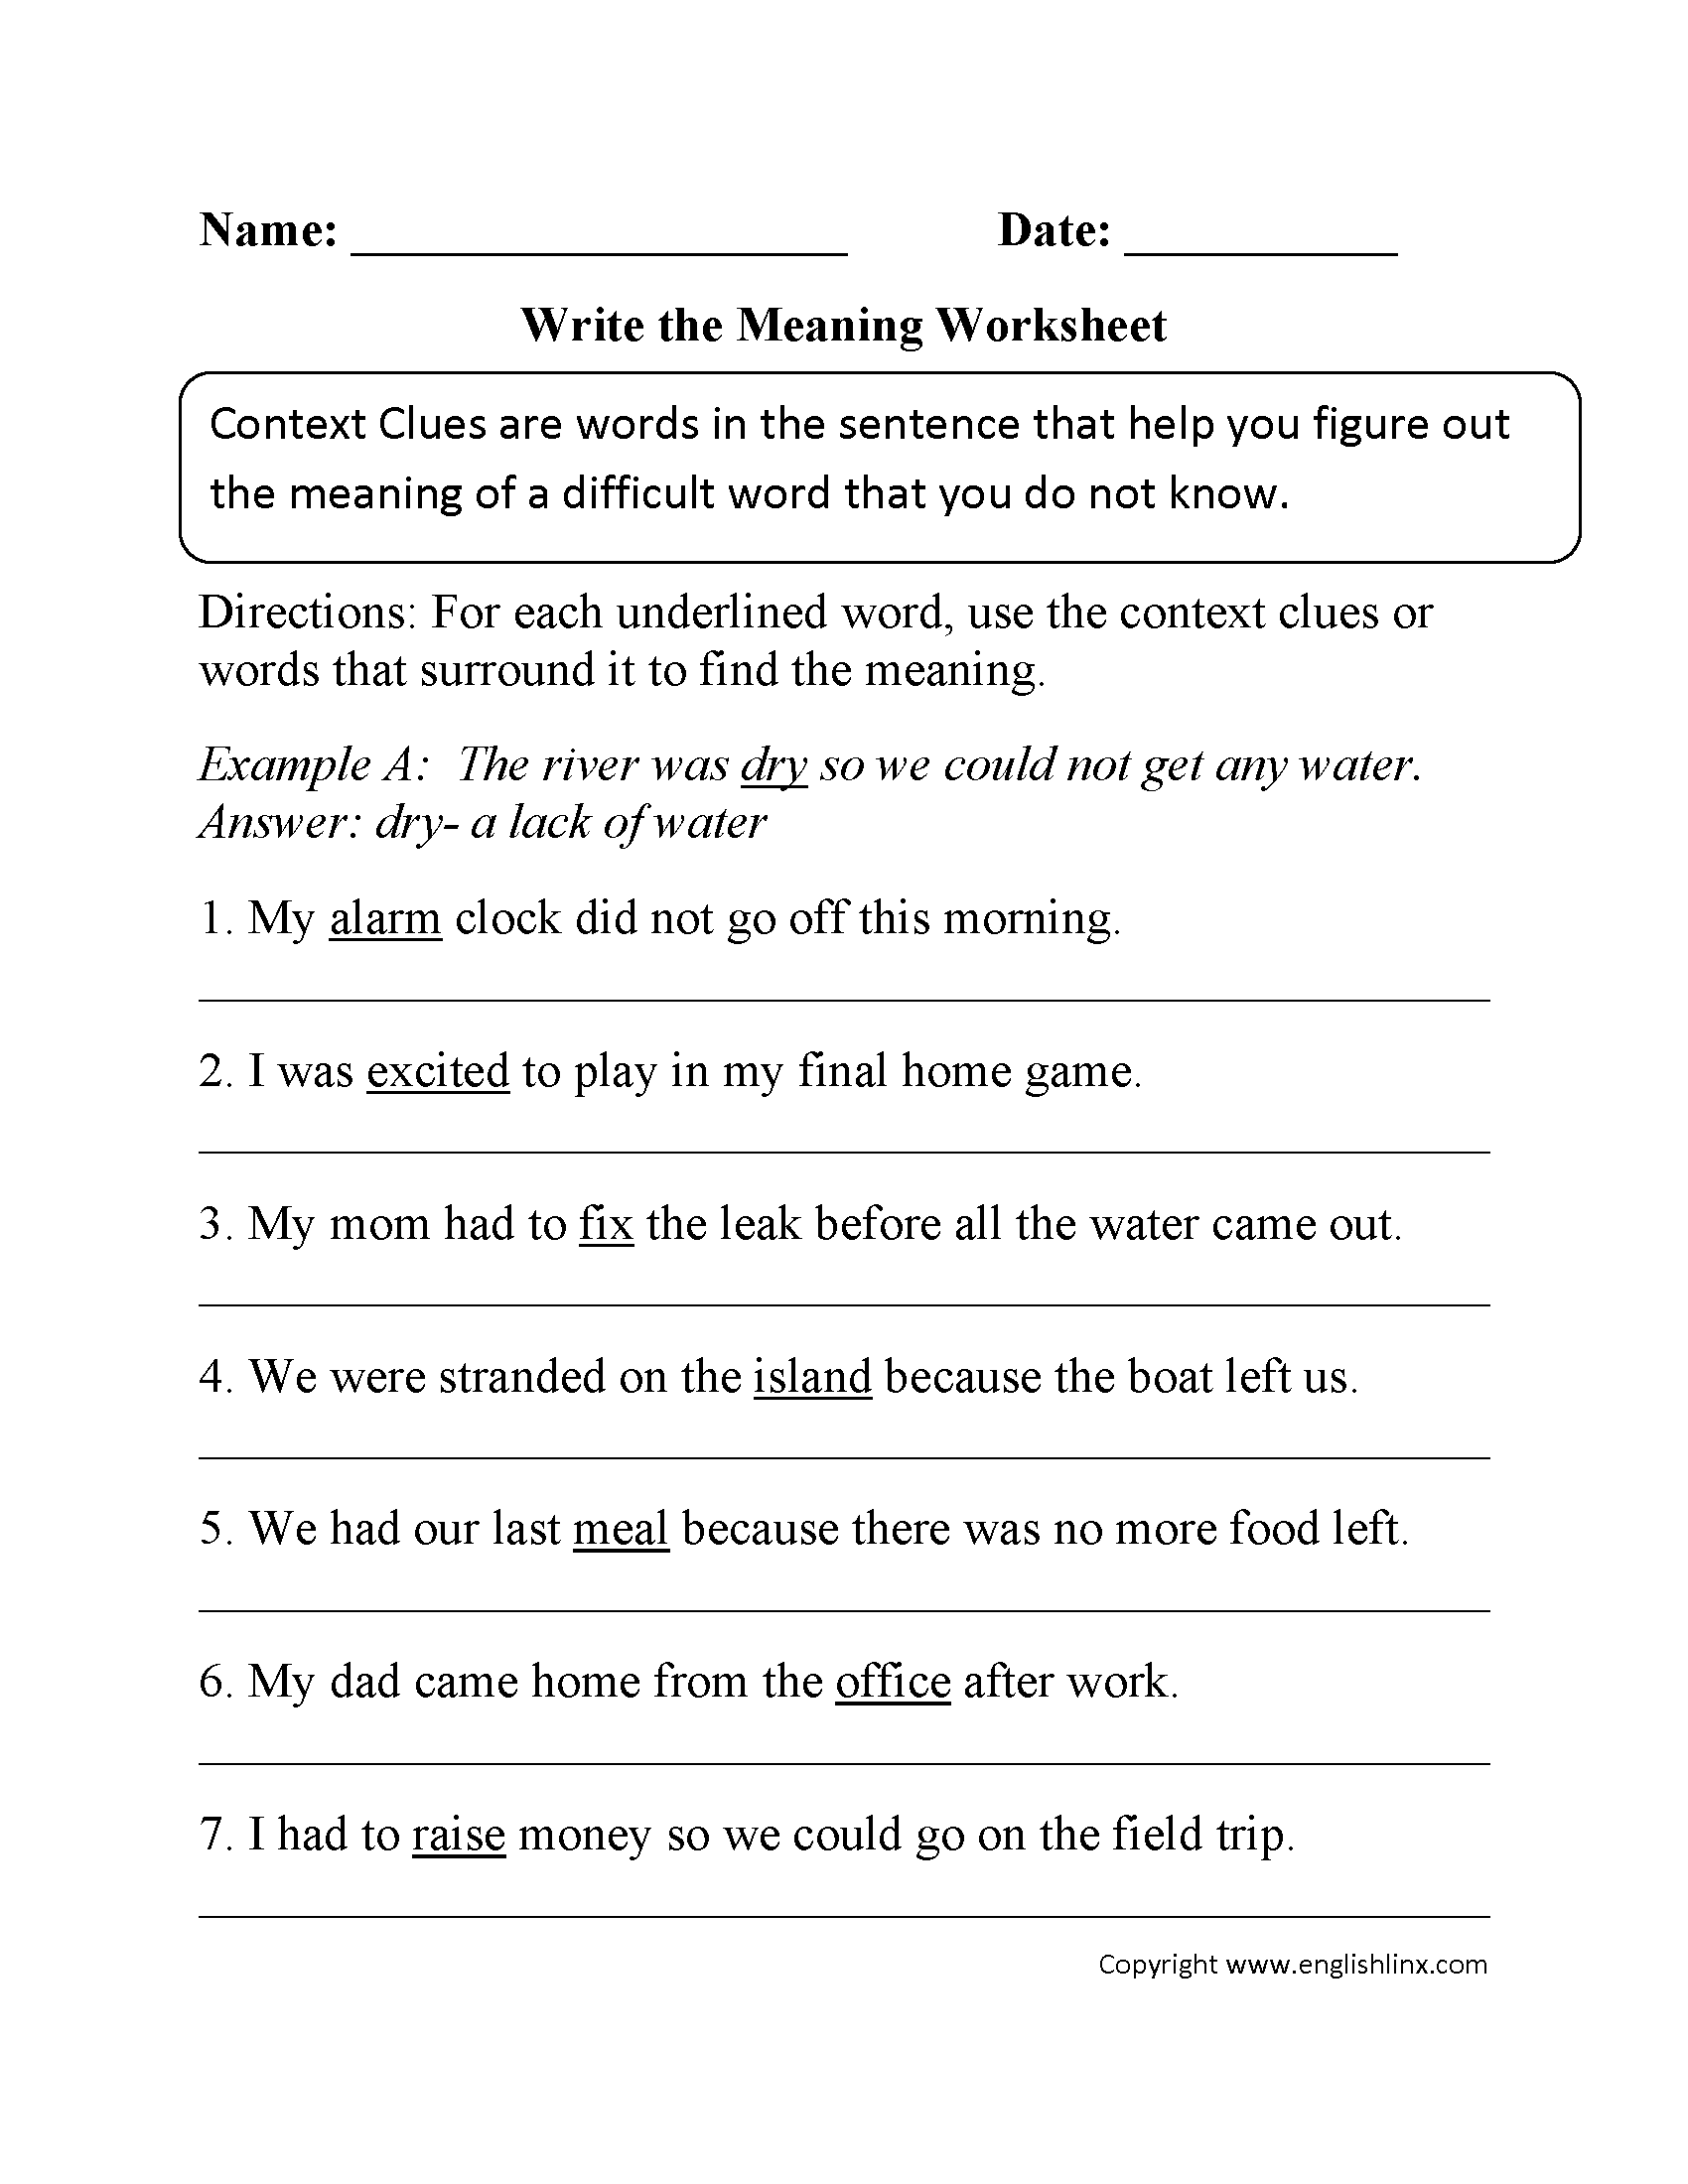 Context Clues Worksheets 6th Grade Davezan – Context Clues Worksheets Multiple Choice